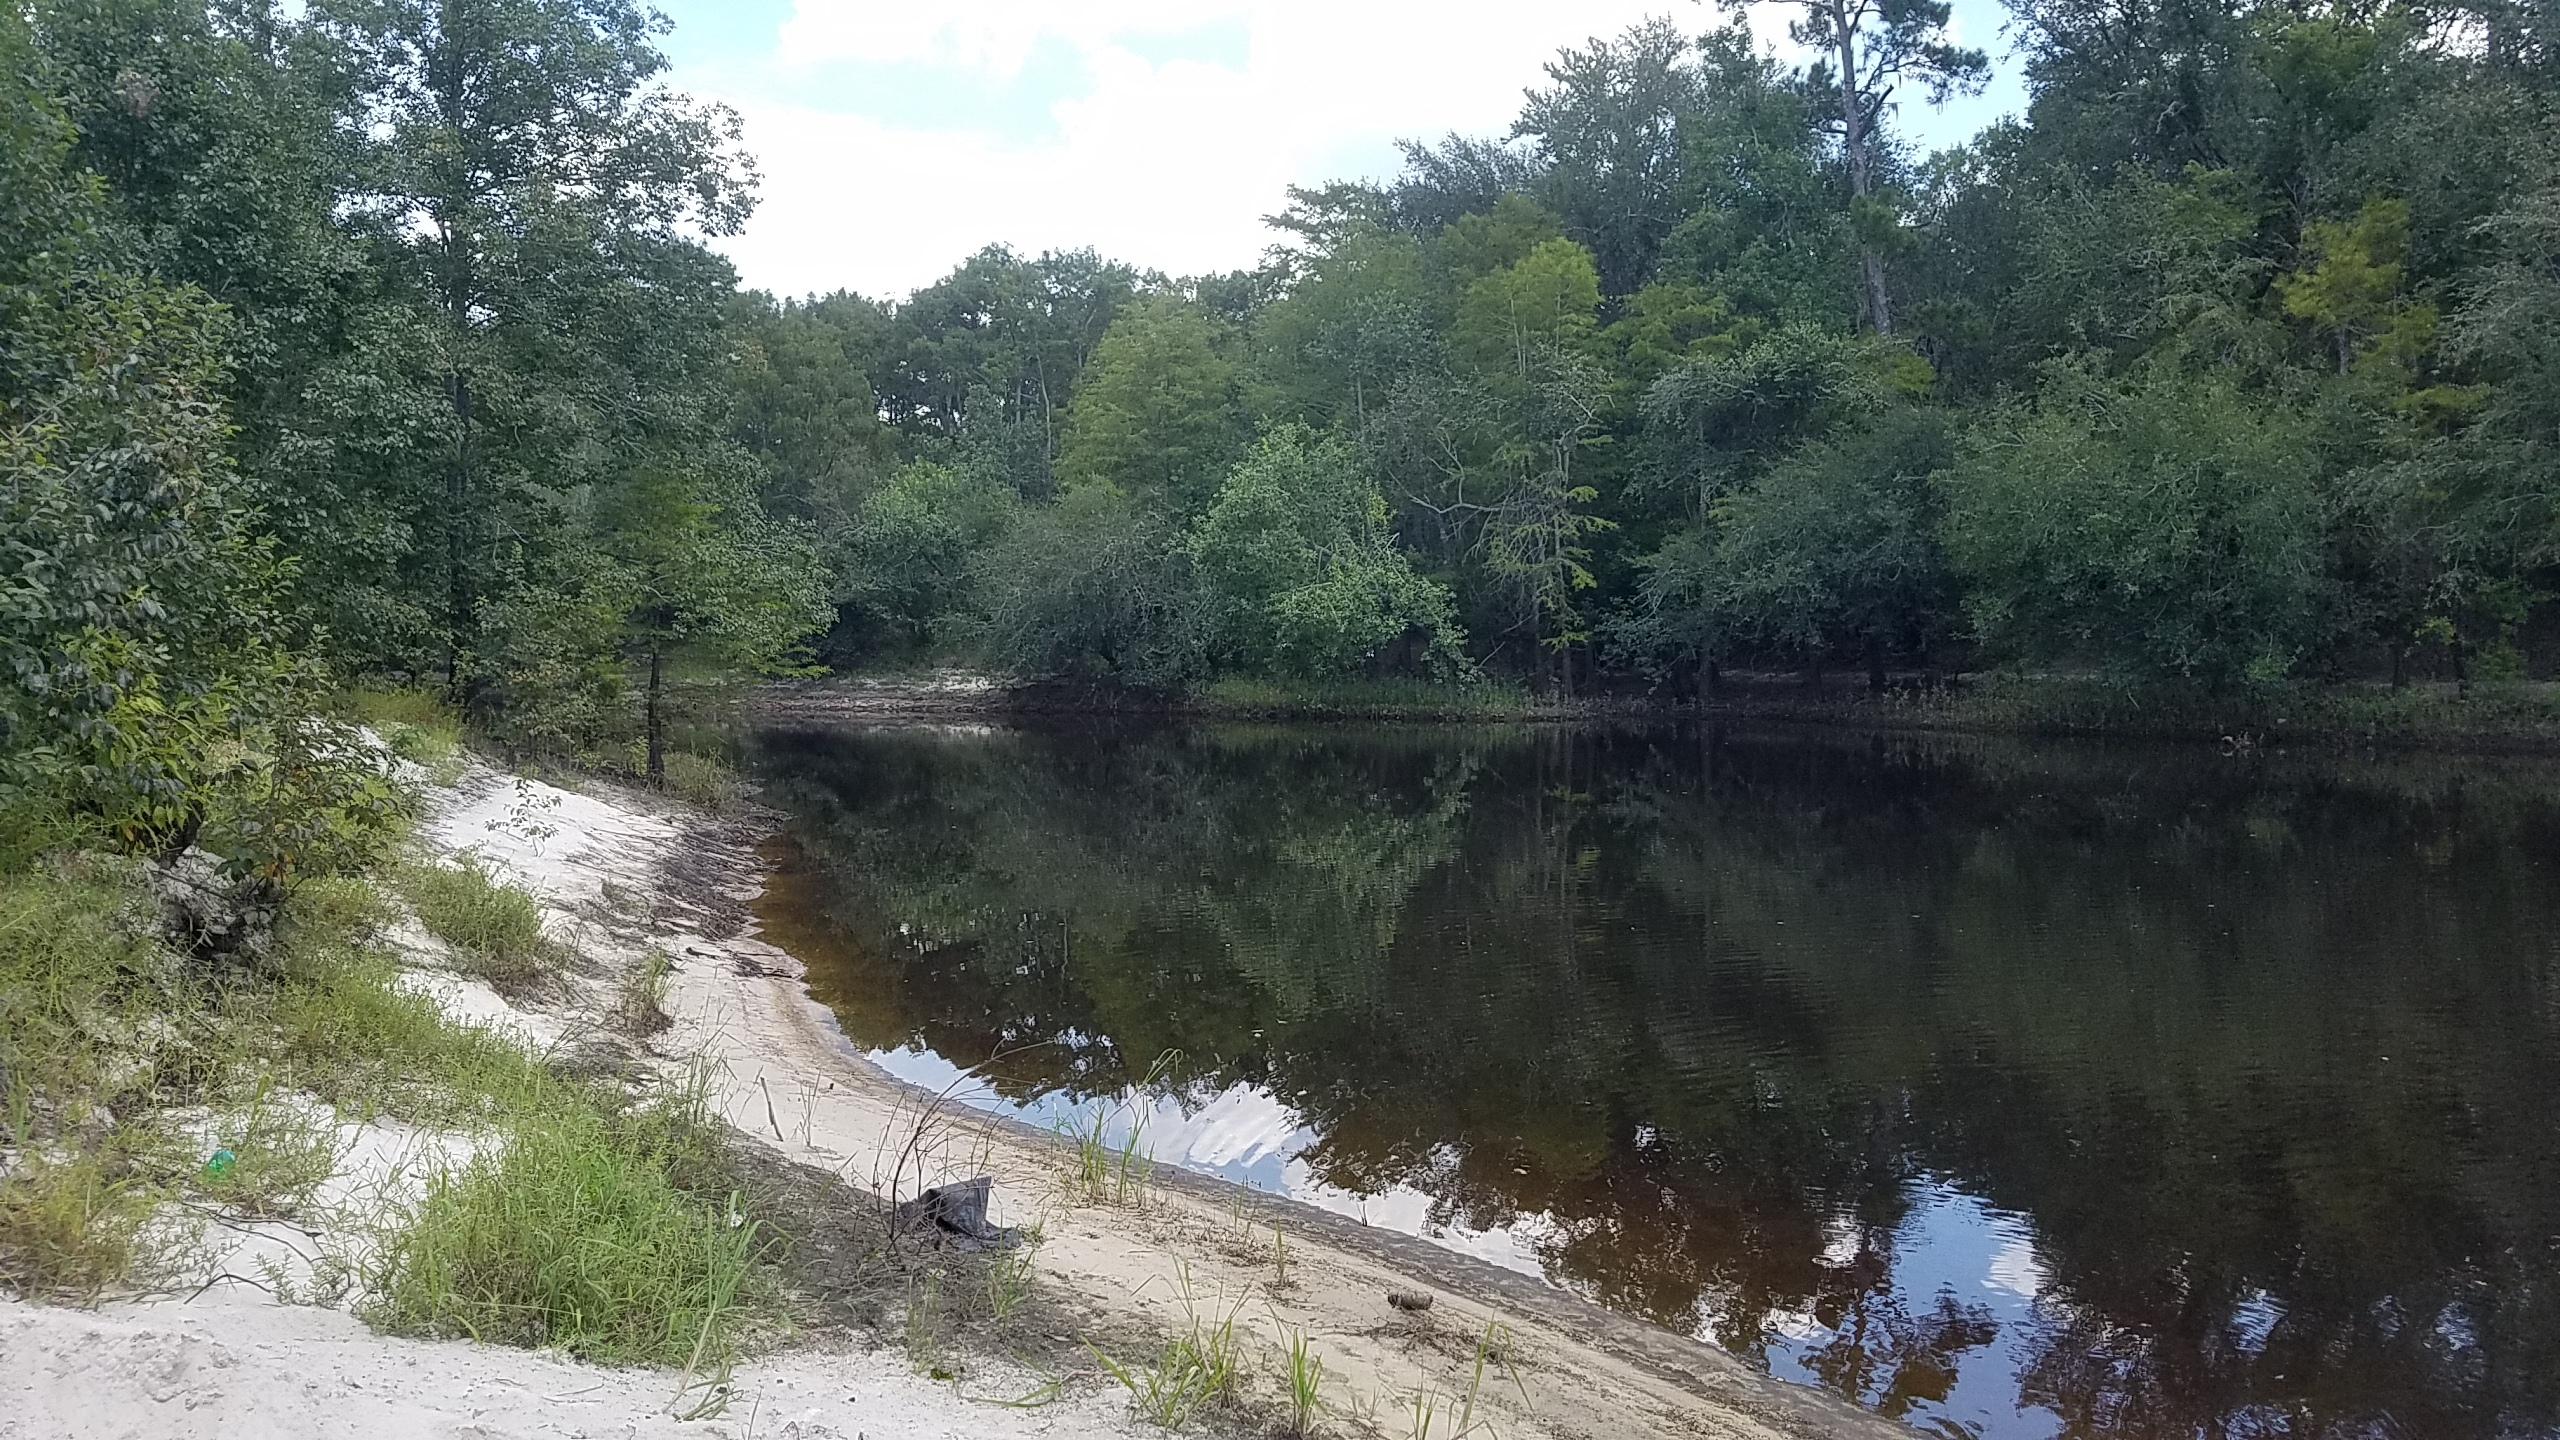 2560x1440 Upstream with trash, in Pafford's Landing, Alapaha River, by John S. Quarterman, for WWALS.net, 24 August 2017